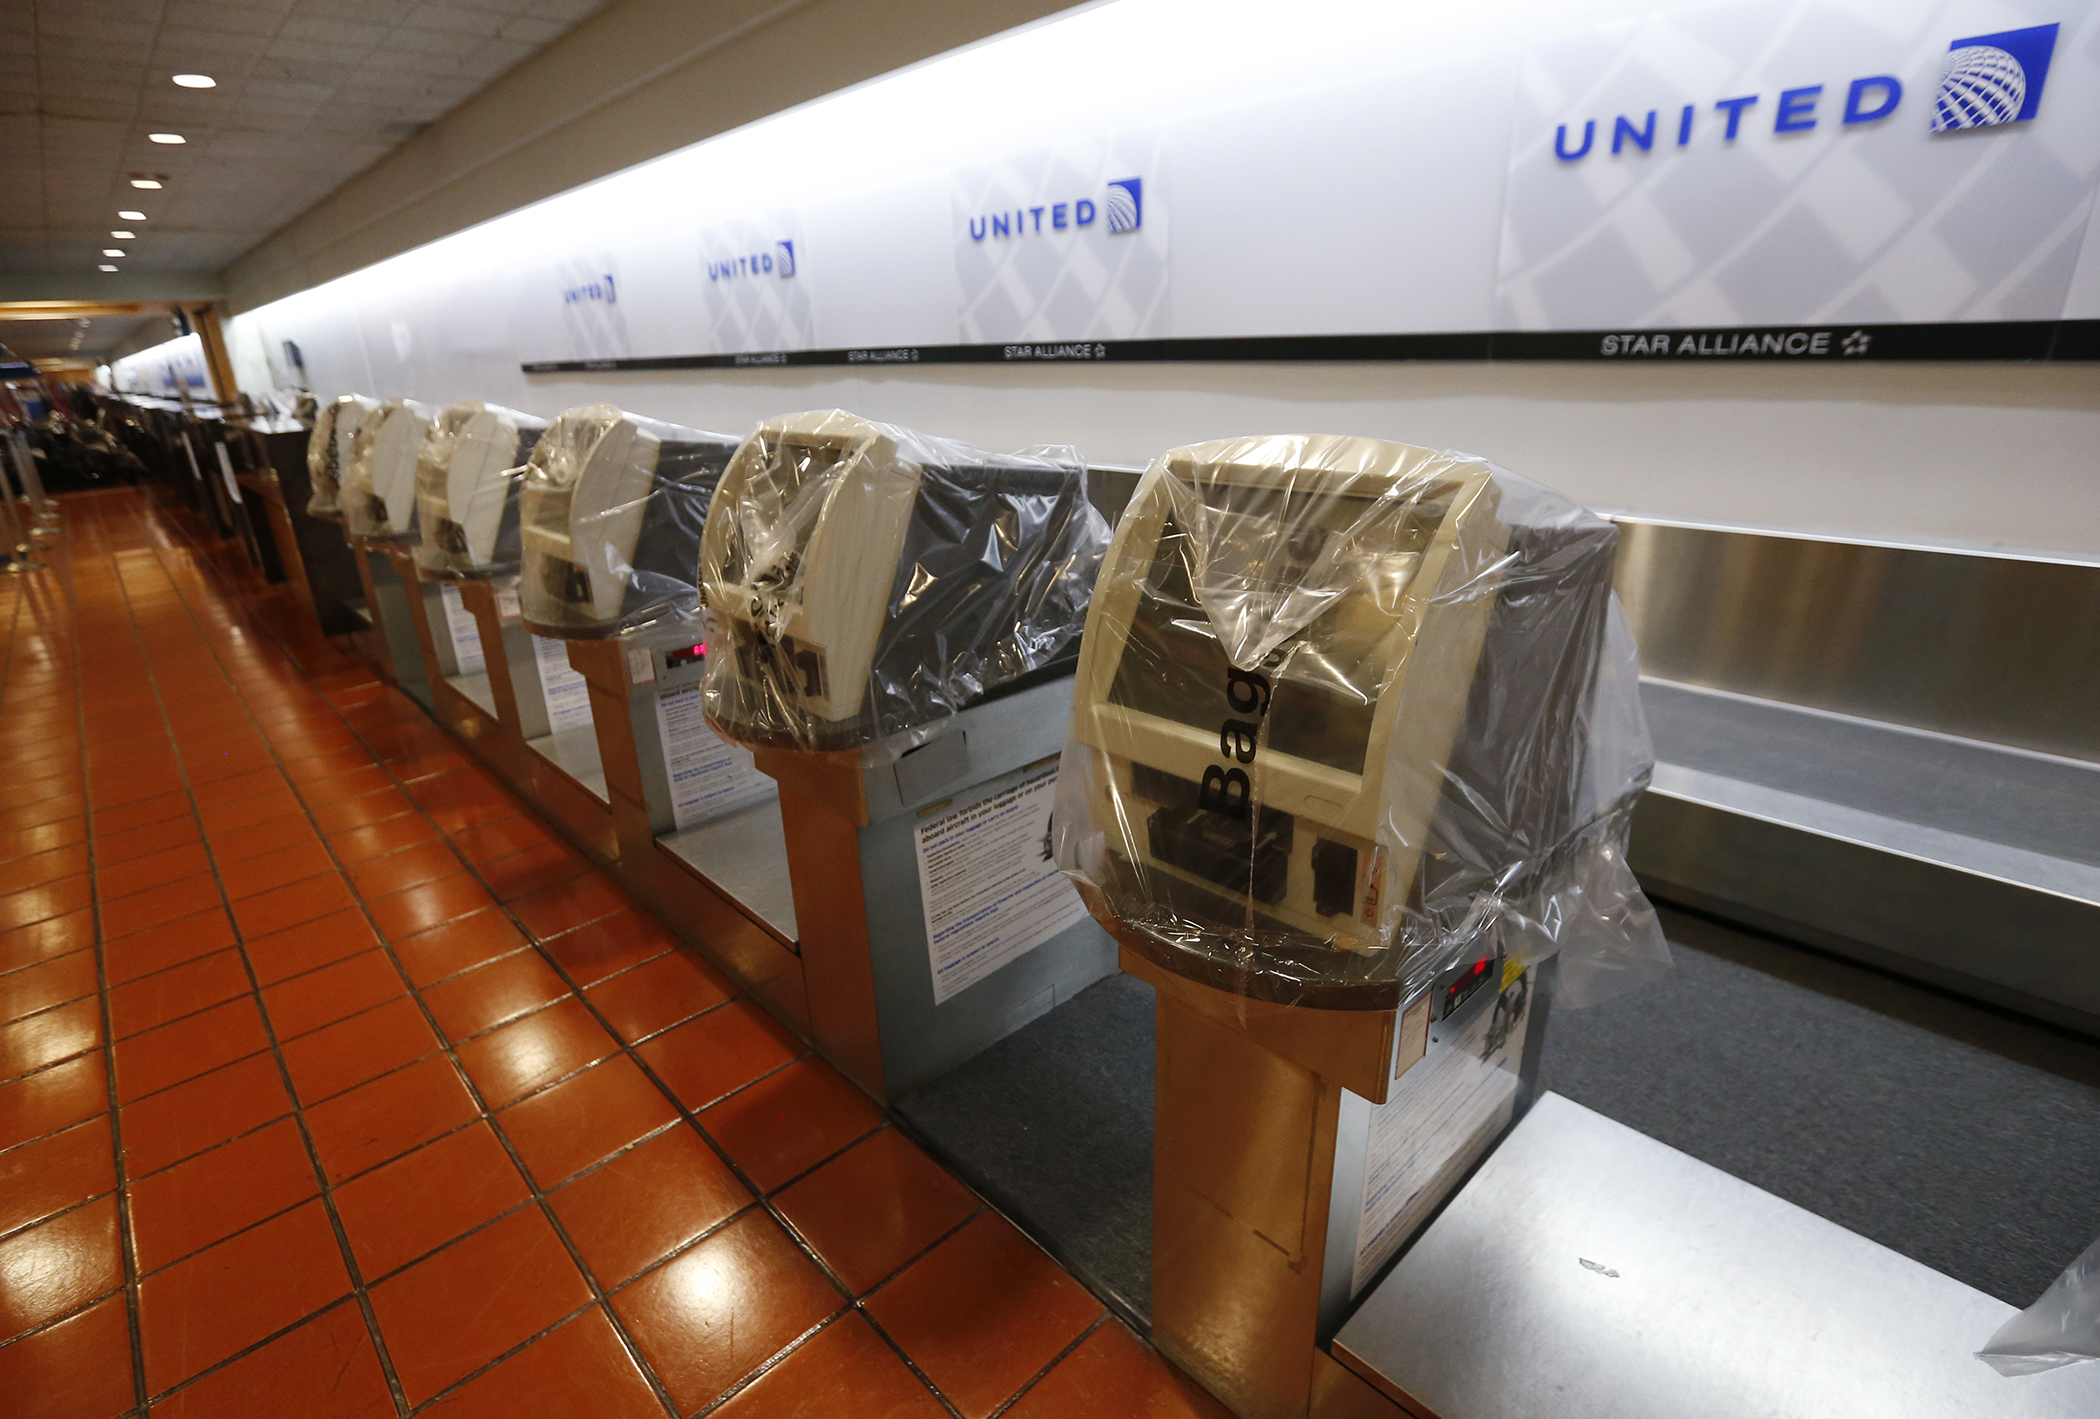 Ticketing machines are covered in plastic and flights in and out of the Palm Beach International airport in the afternoon as Hurricane Matthew advances, Thursday, Oct. 6, 2016, in West Palm Beach, Fla. The National Hurricane Center in Miami said the storm's maximum sustained winds had strengthened to 140 mph as of late Thursday morning and were expected to maintain their strength as the storm approaches the Florida coast.